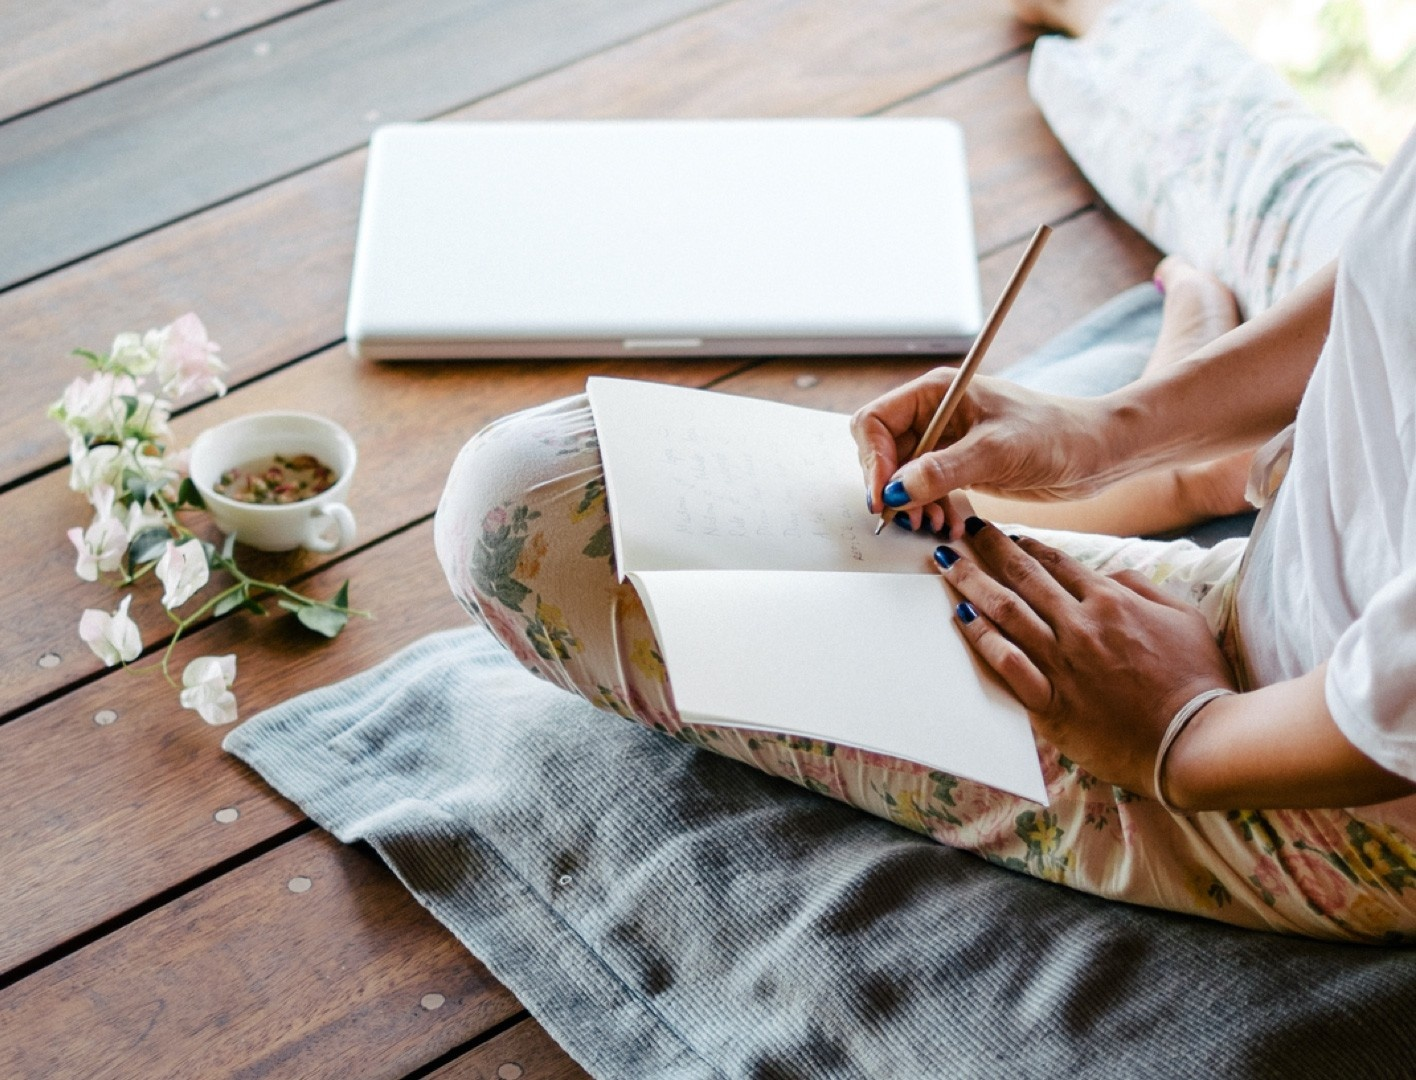 Image of woman writing her journey in a notebook and meditating.